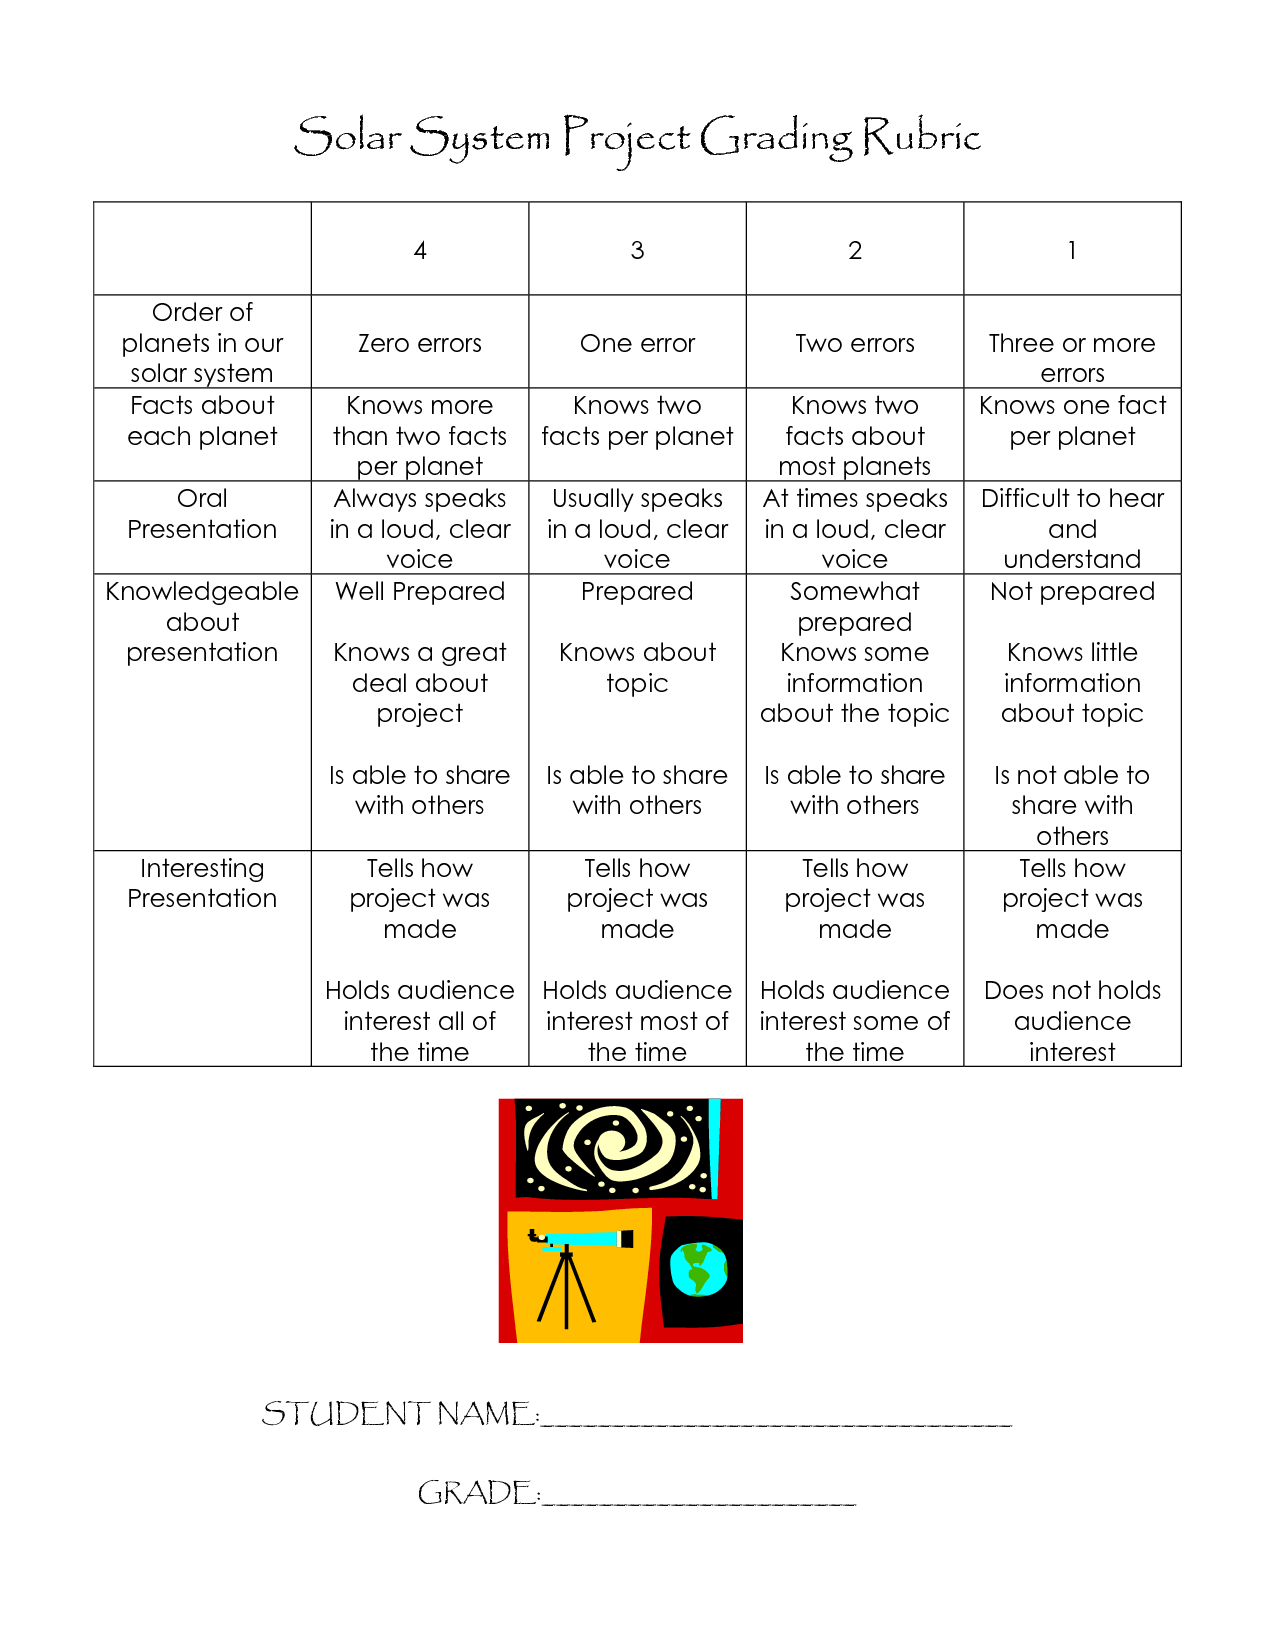 Solar System Project Rubric